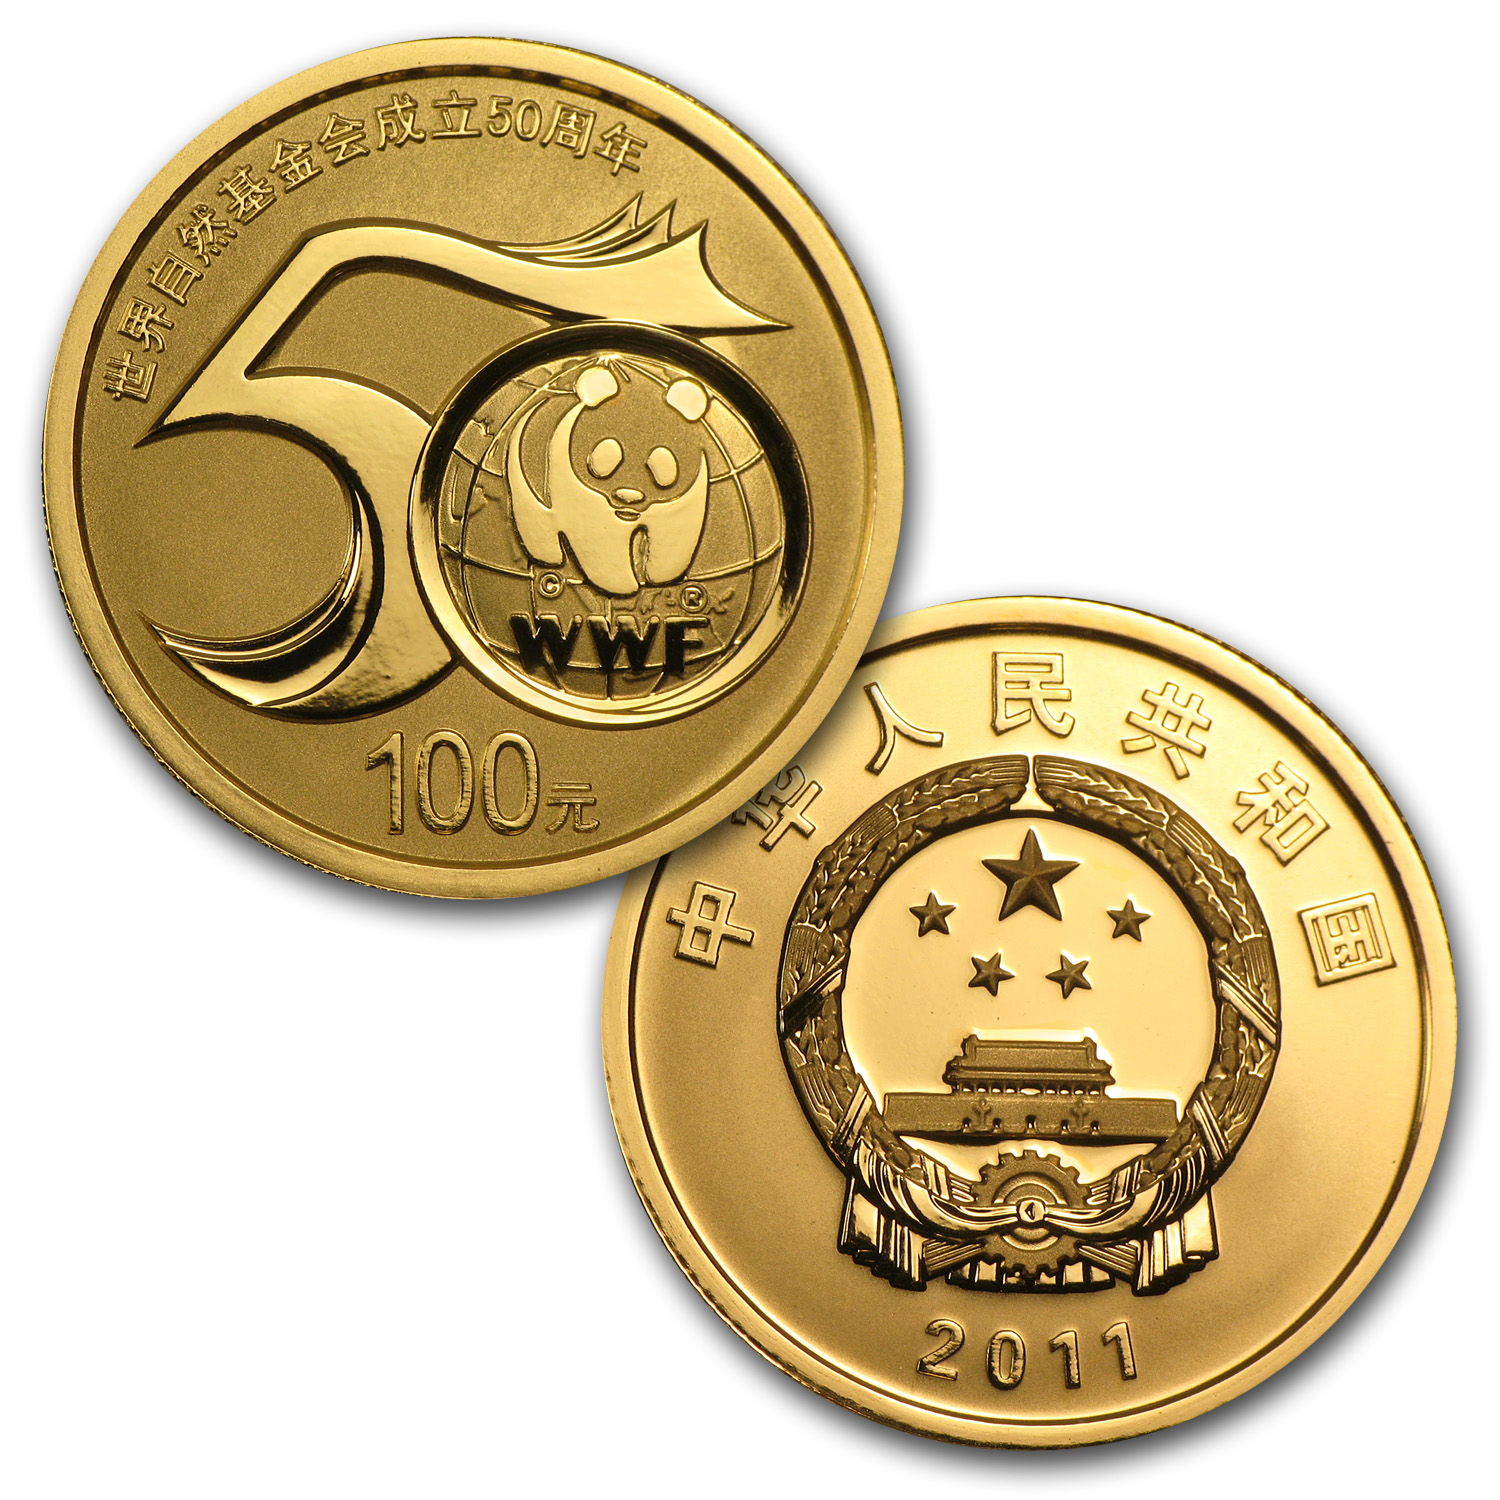 2011 China 2-Coin 1/4 oz Gold & 1 oz Silver 50th Anniv of WWF Set